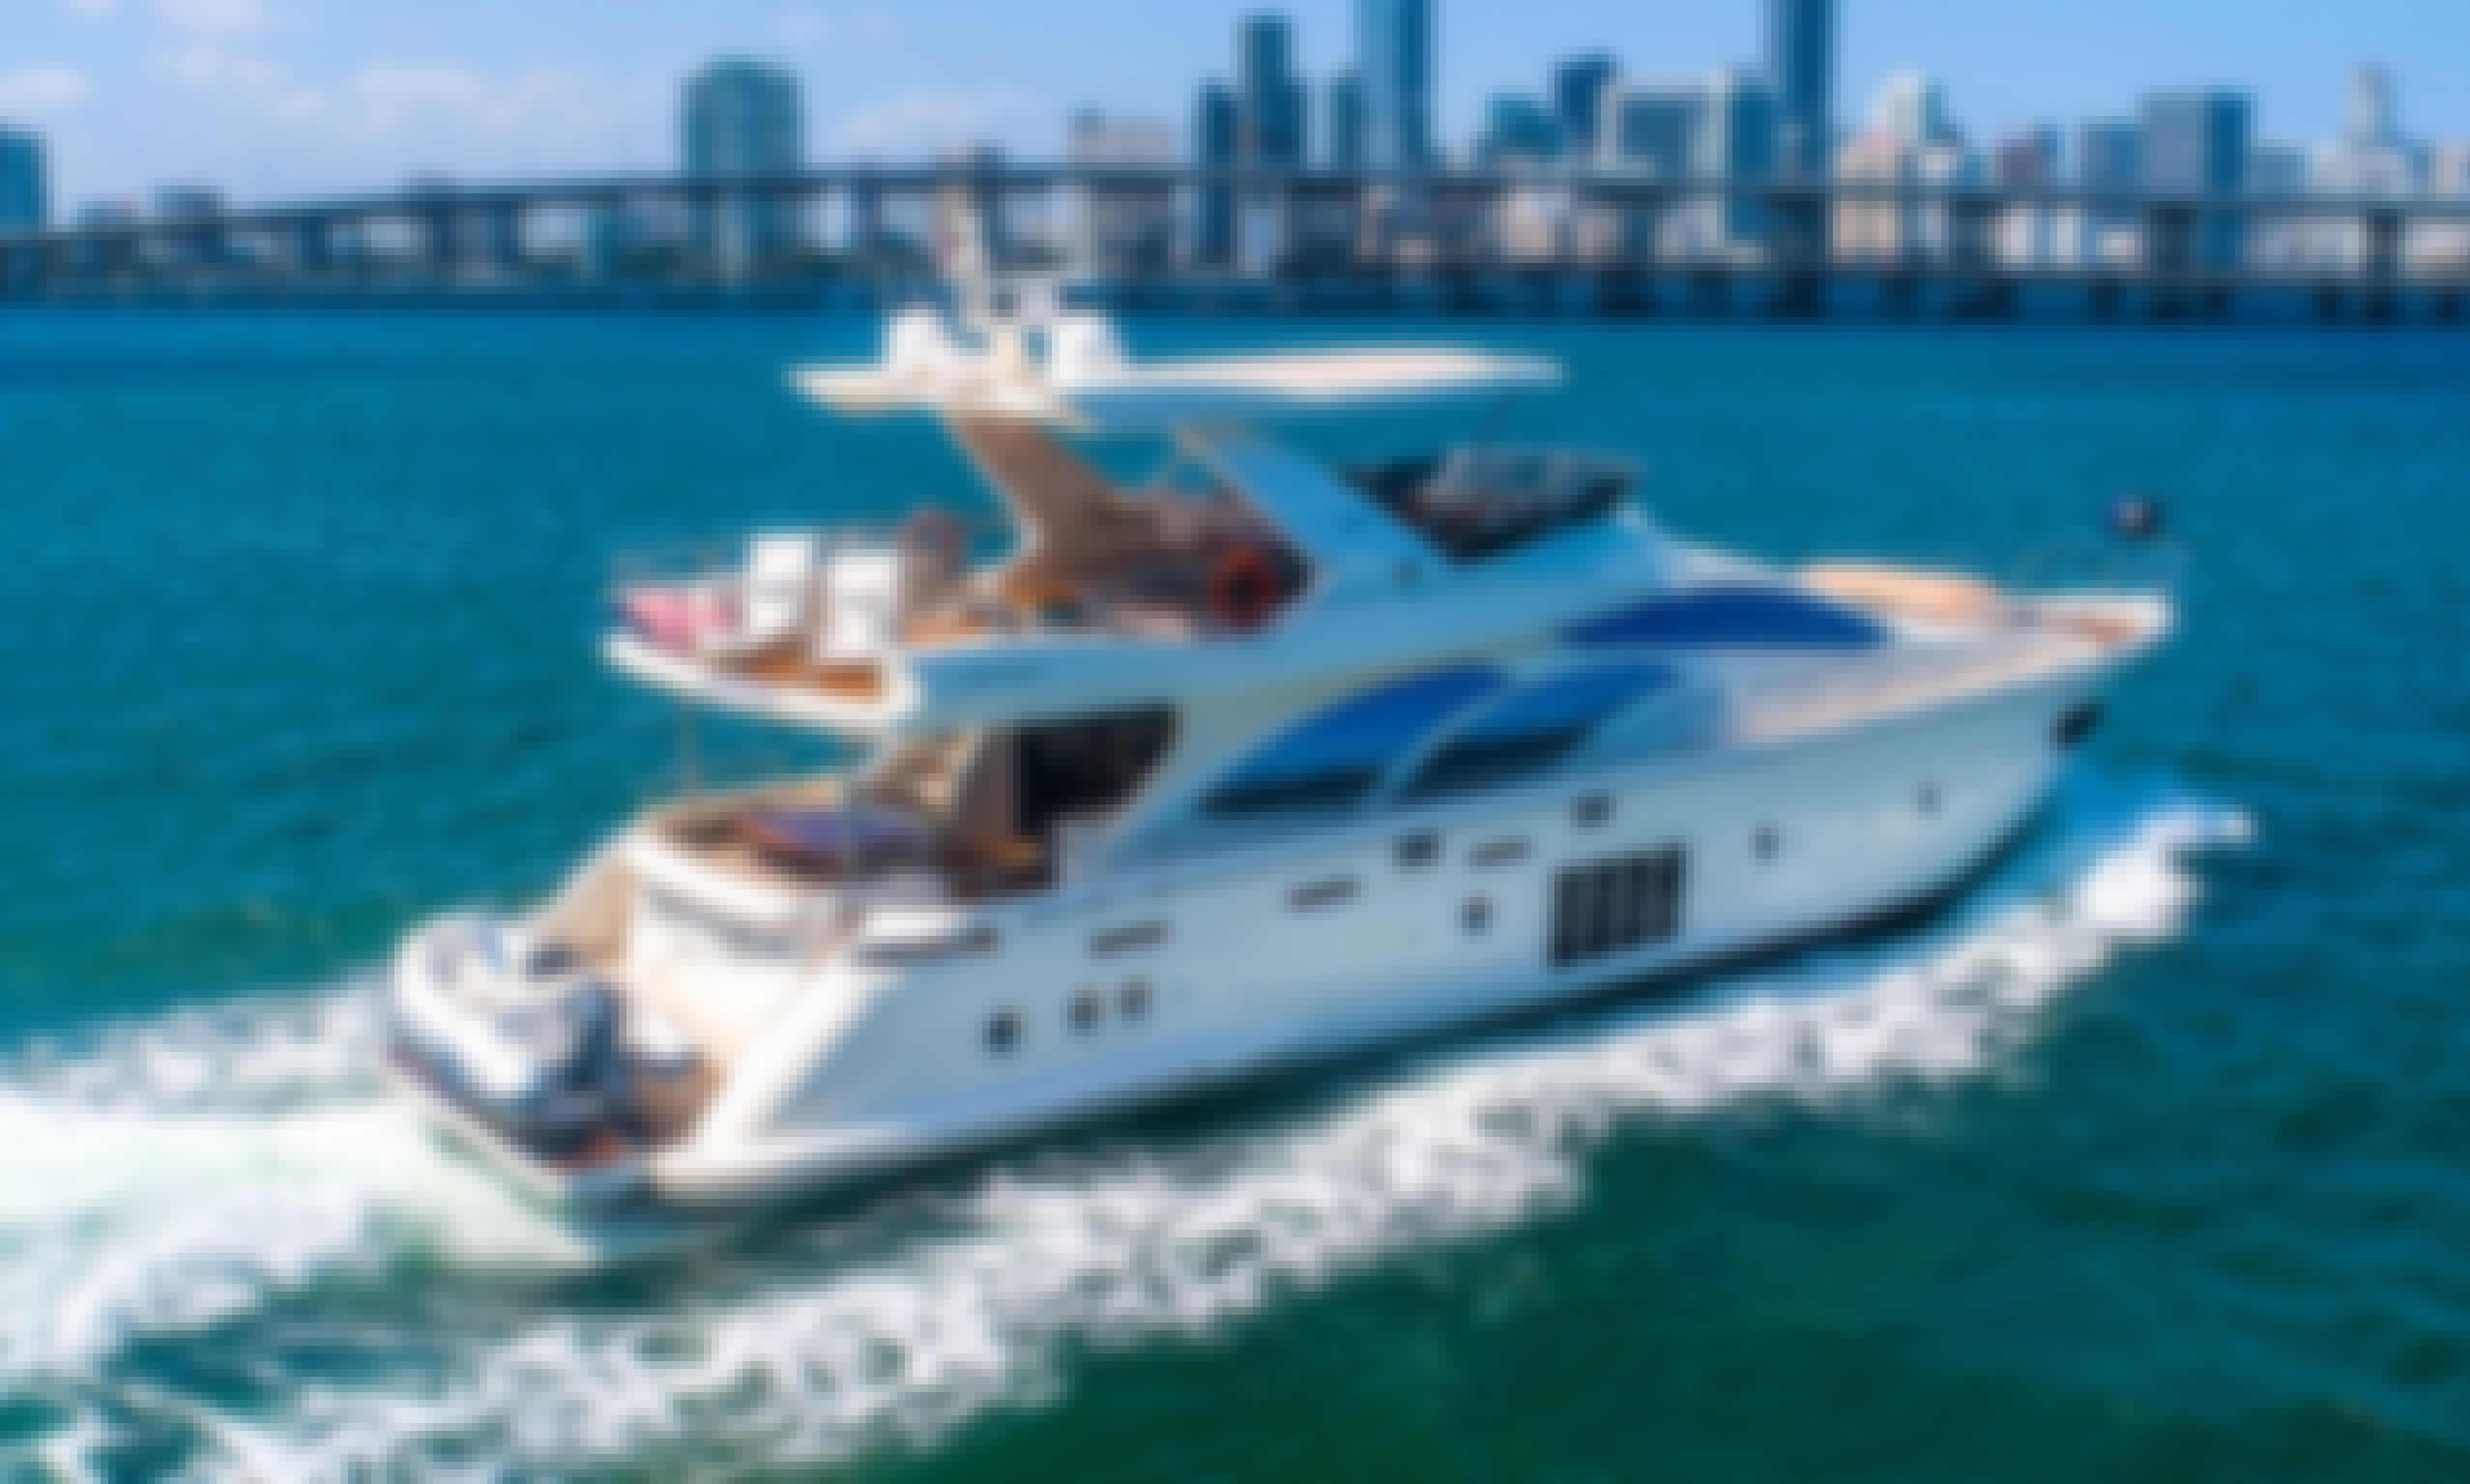 78' Azimut - INCLUDES TAX - Don't Just Rent a Yacht. Rent a Luxury Yachting Experience!